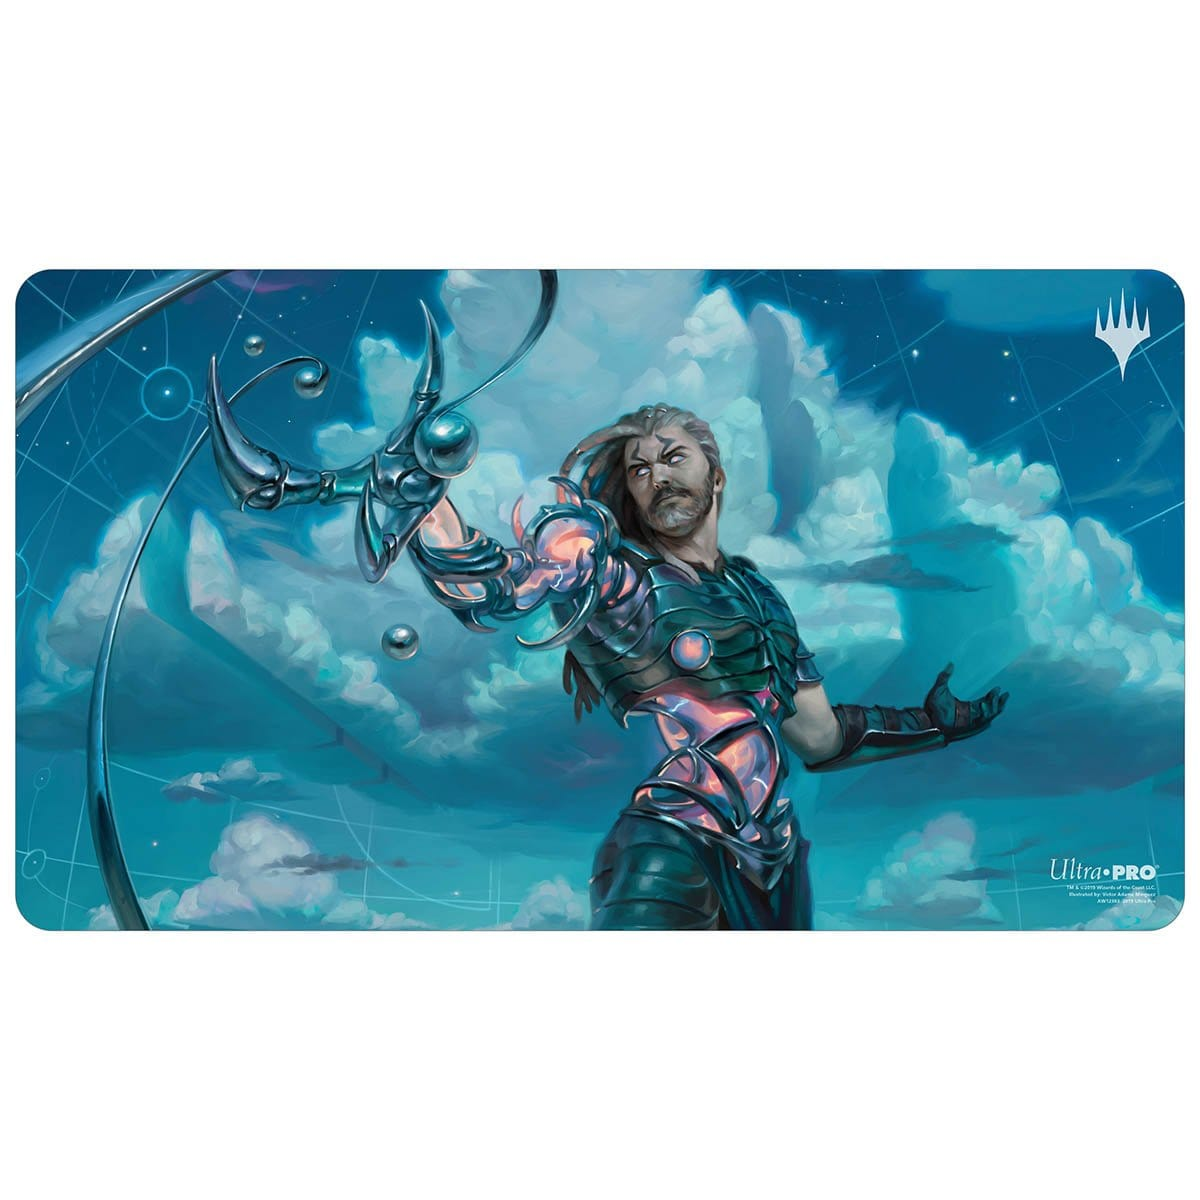 Tezzeret the Seeker Playmat - Playmat - Original Magic Art - Accessories for Magic the Gathering and other card games